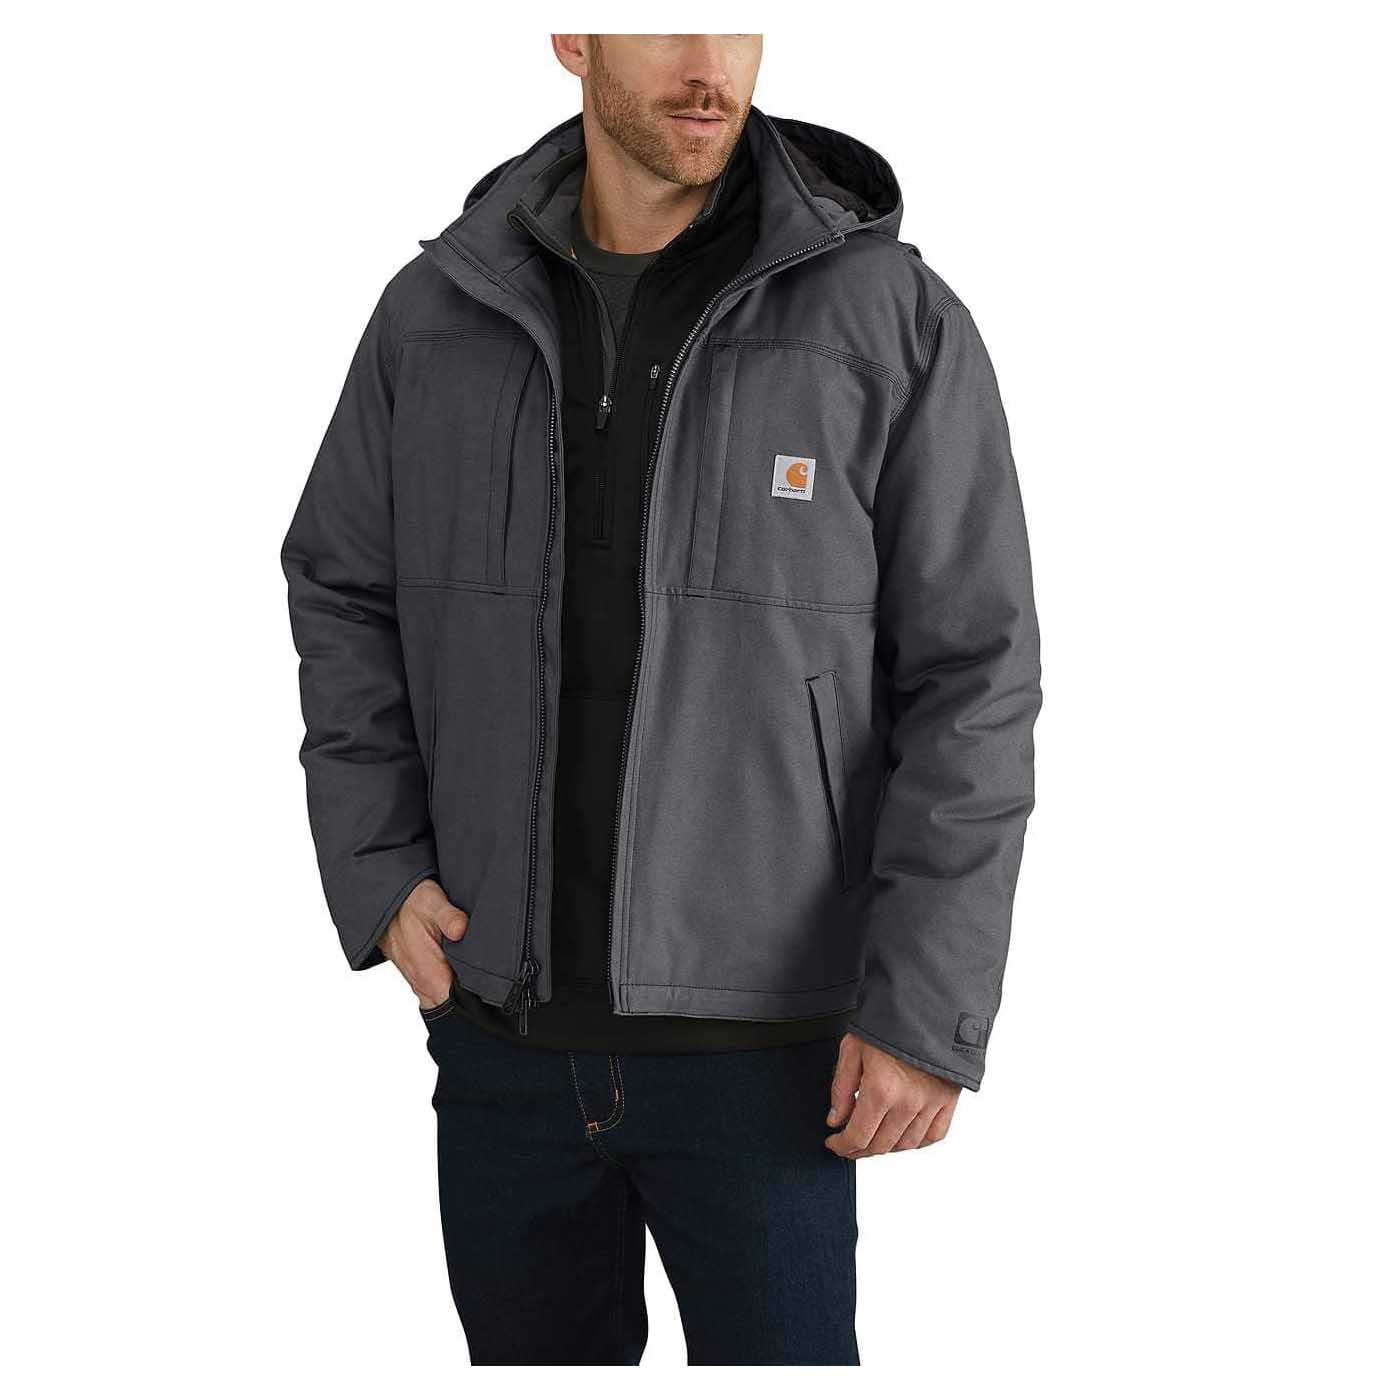 Picture of Carhartt 102207-029-2XL-T Cryder Jacket, 2XL, 50 to 52 in Chest, Cotton/Polyester/Spandex, Shadow, Mock Neck Collar